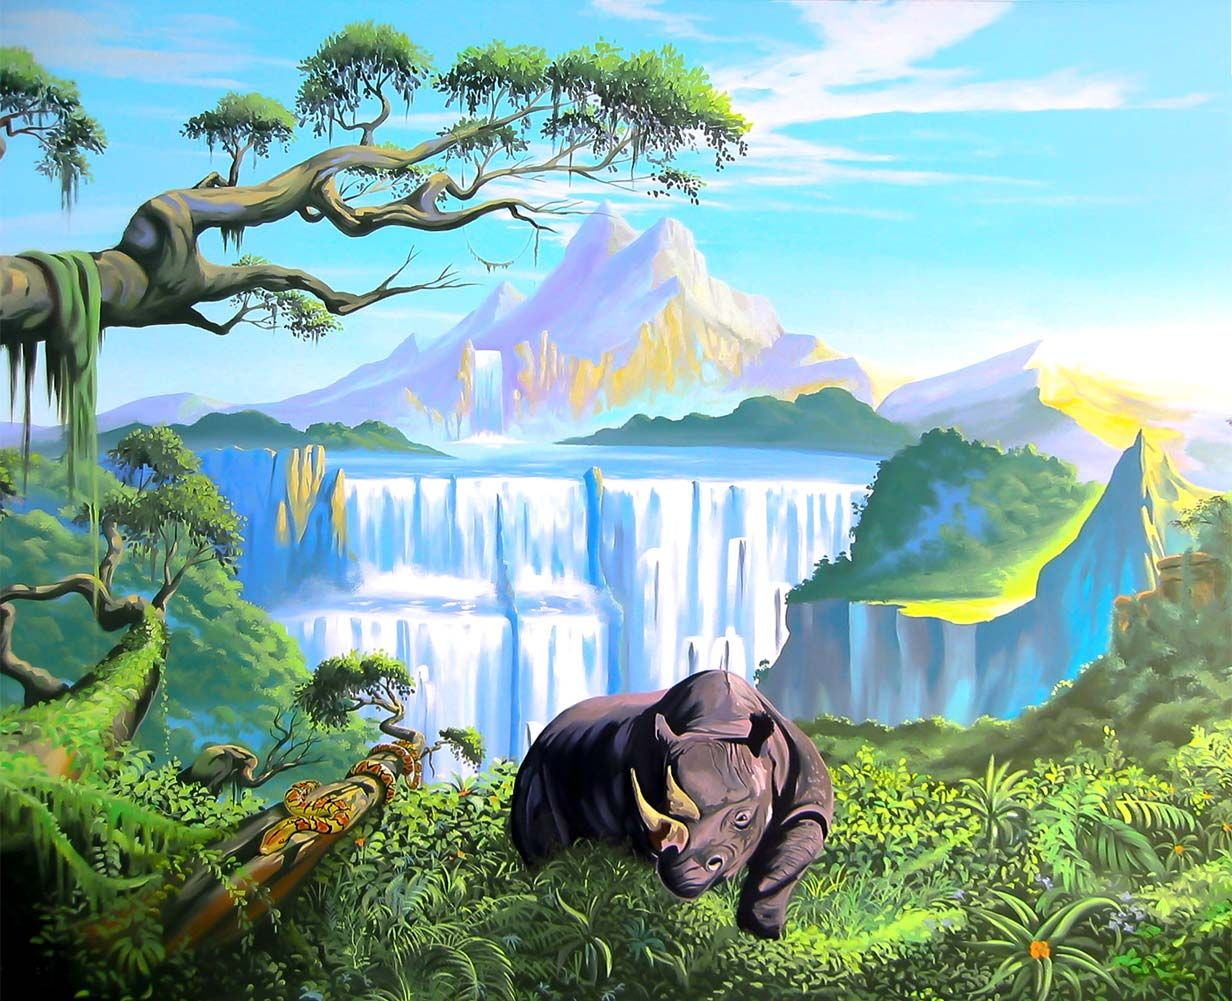 Jungle Wall Mural This First Image Shows The Main